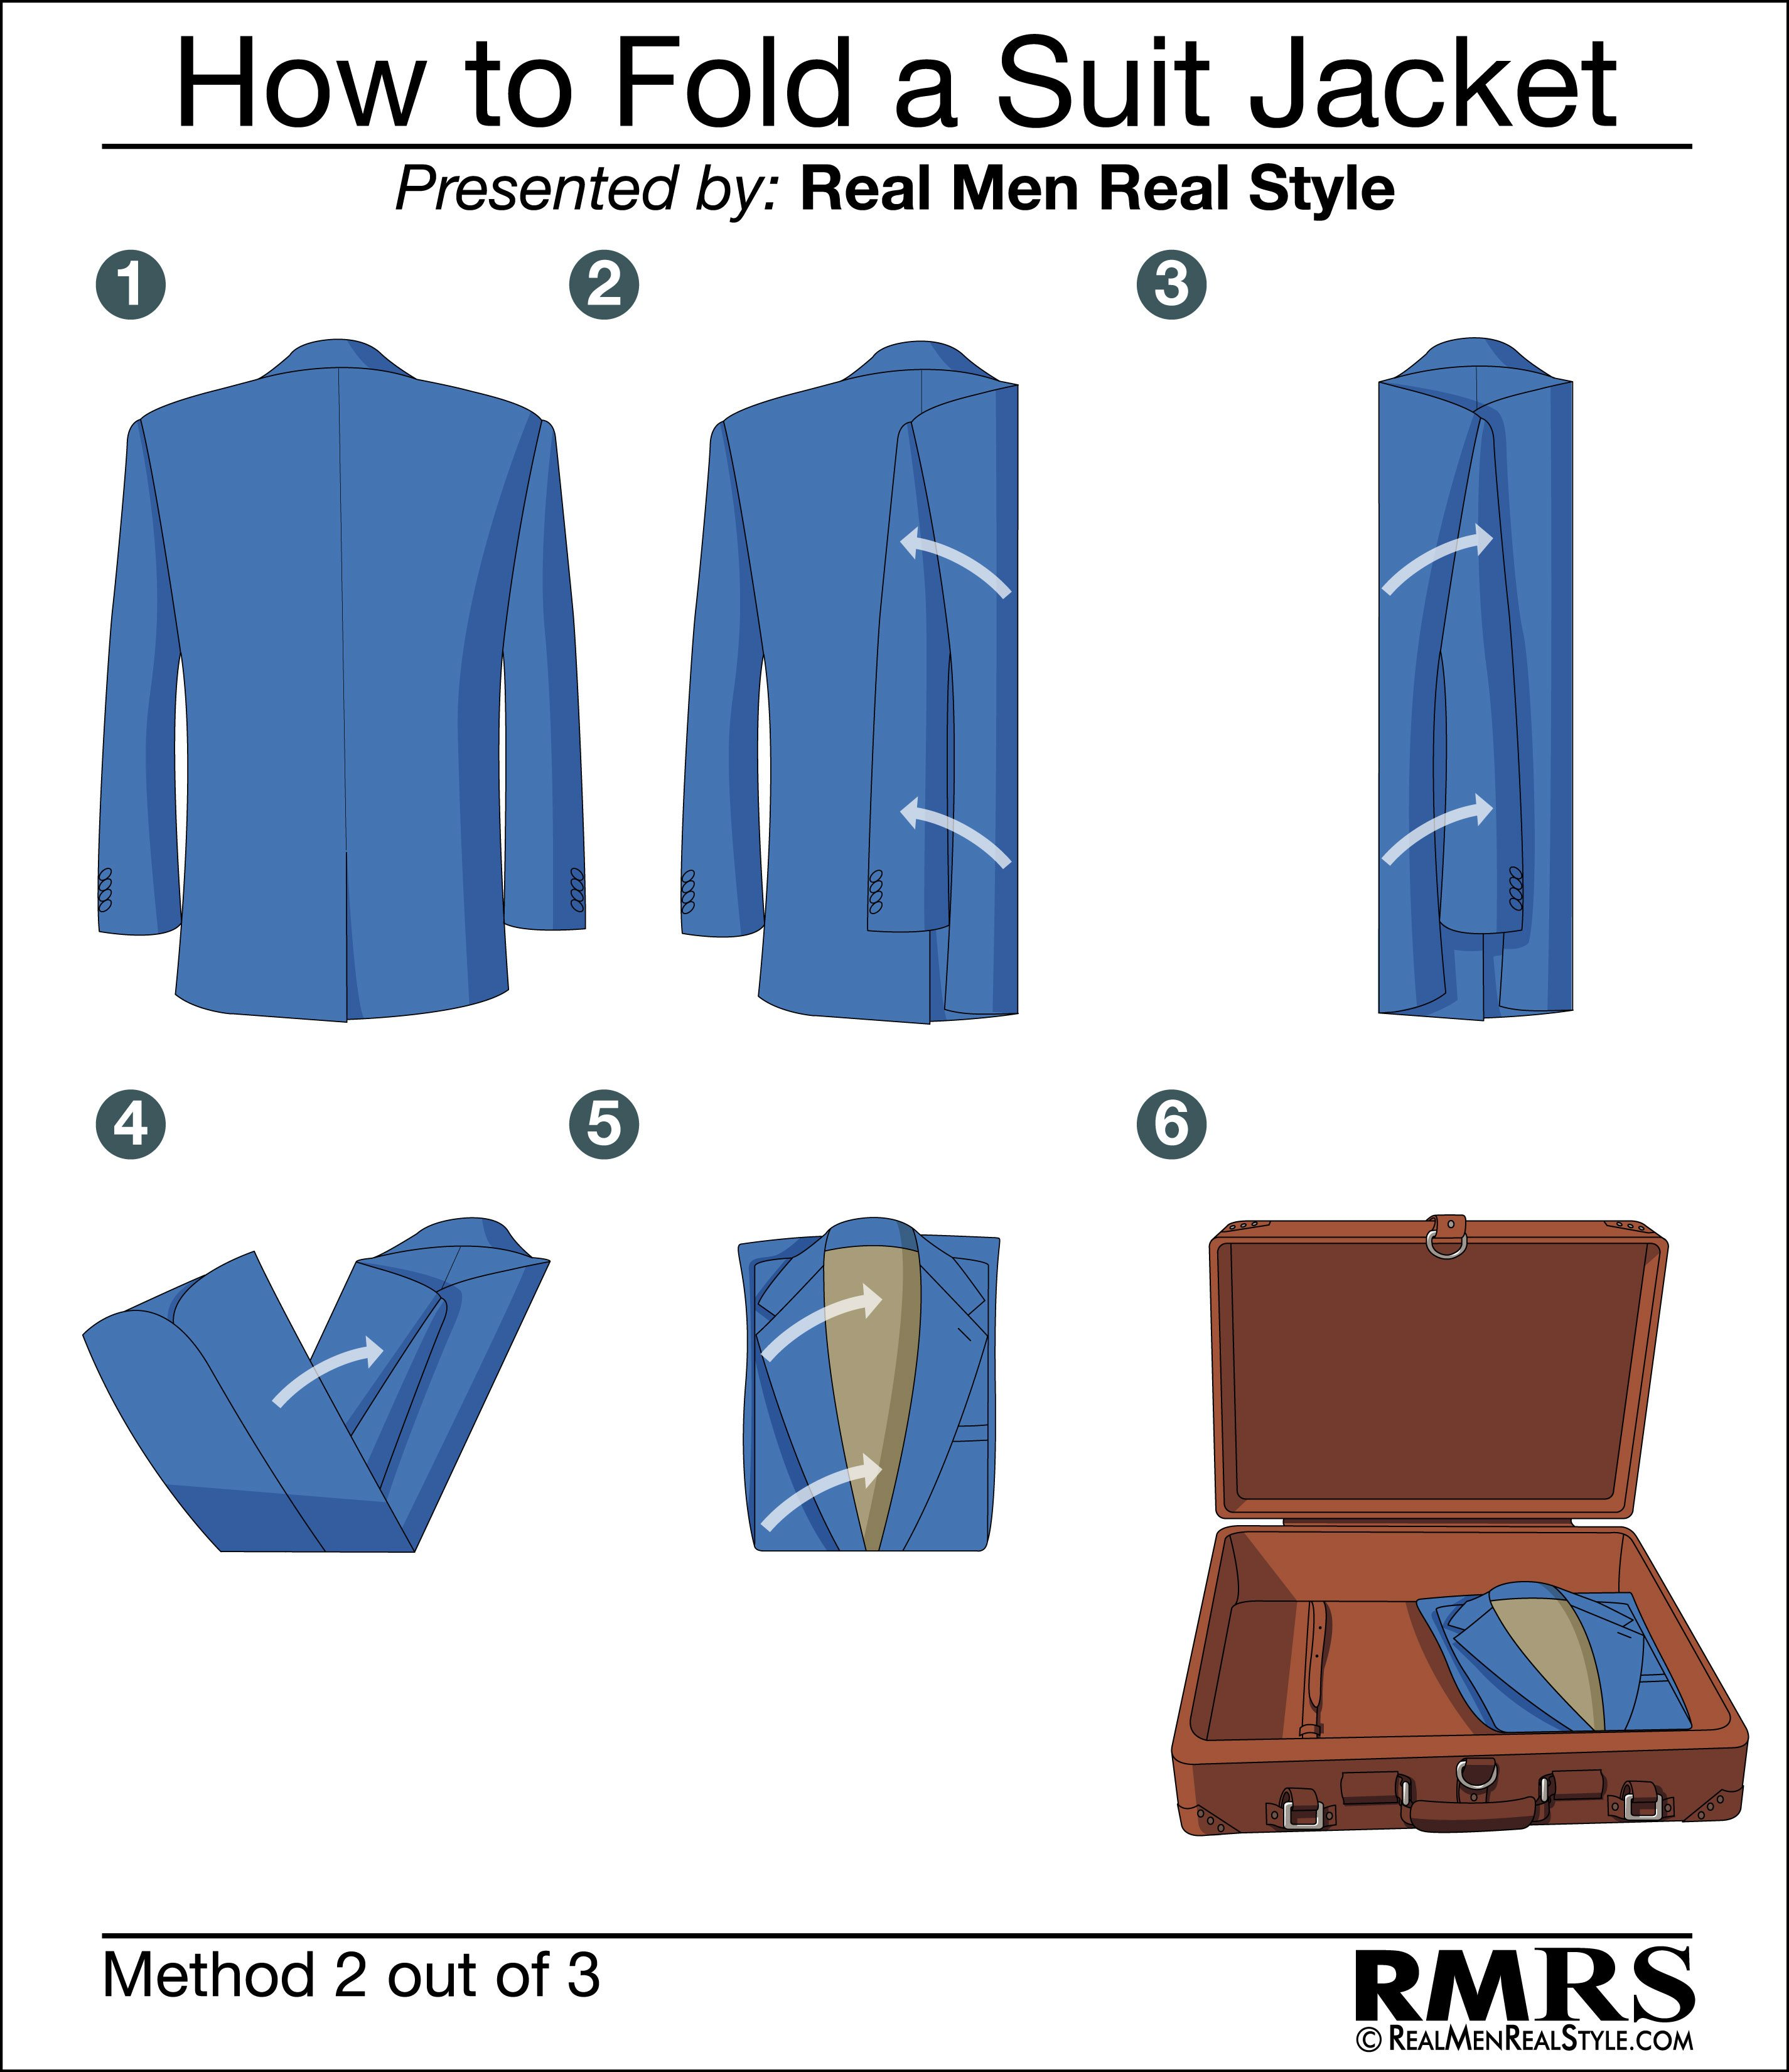 The Shirt-Style Fold